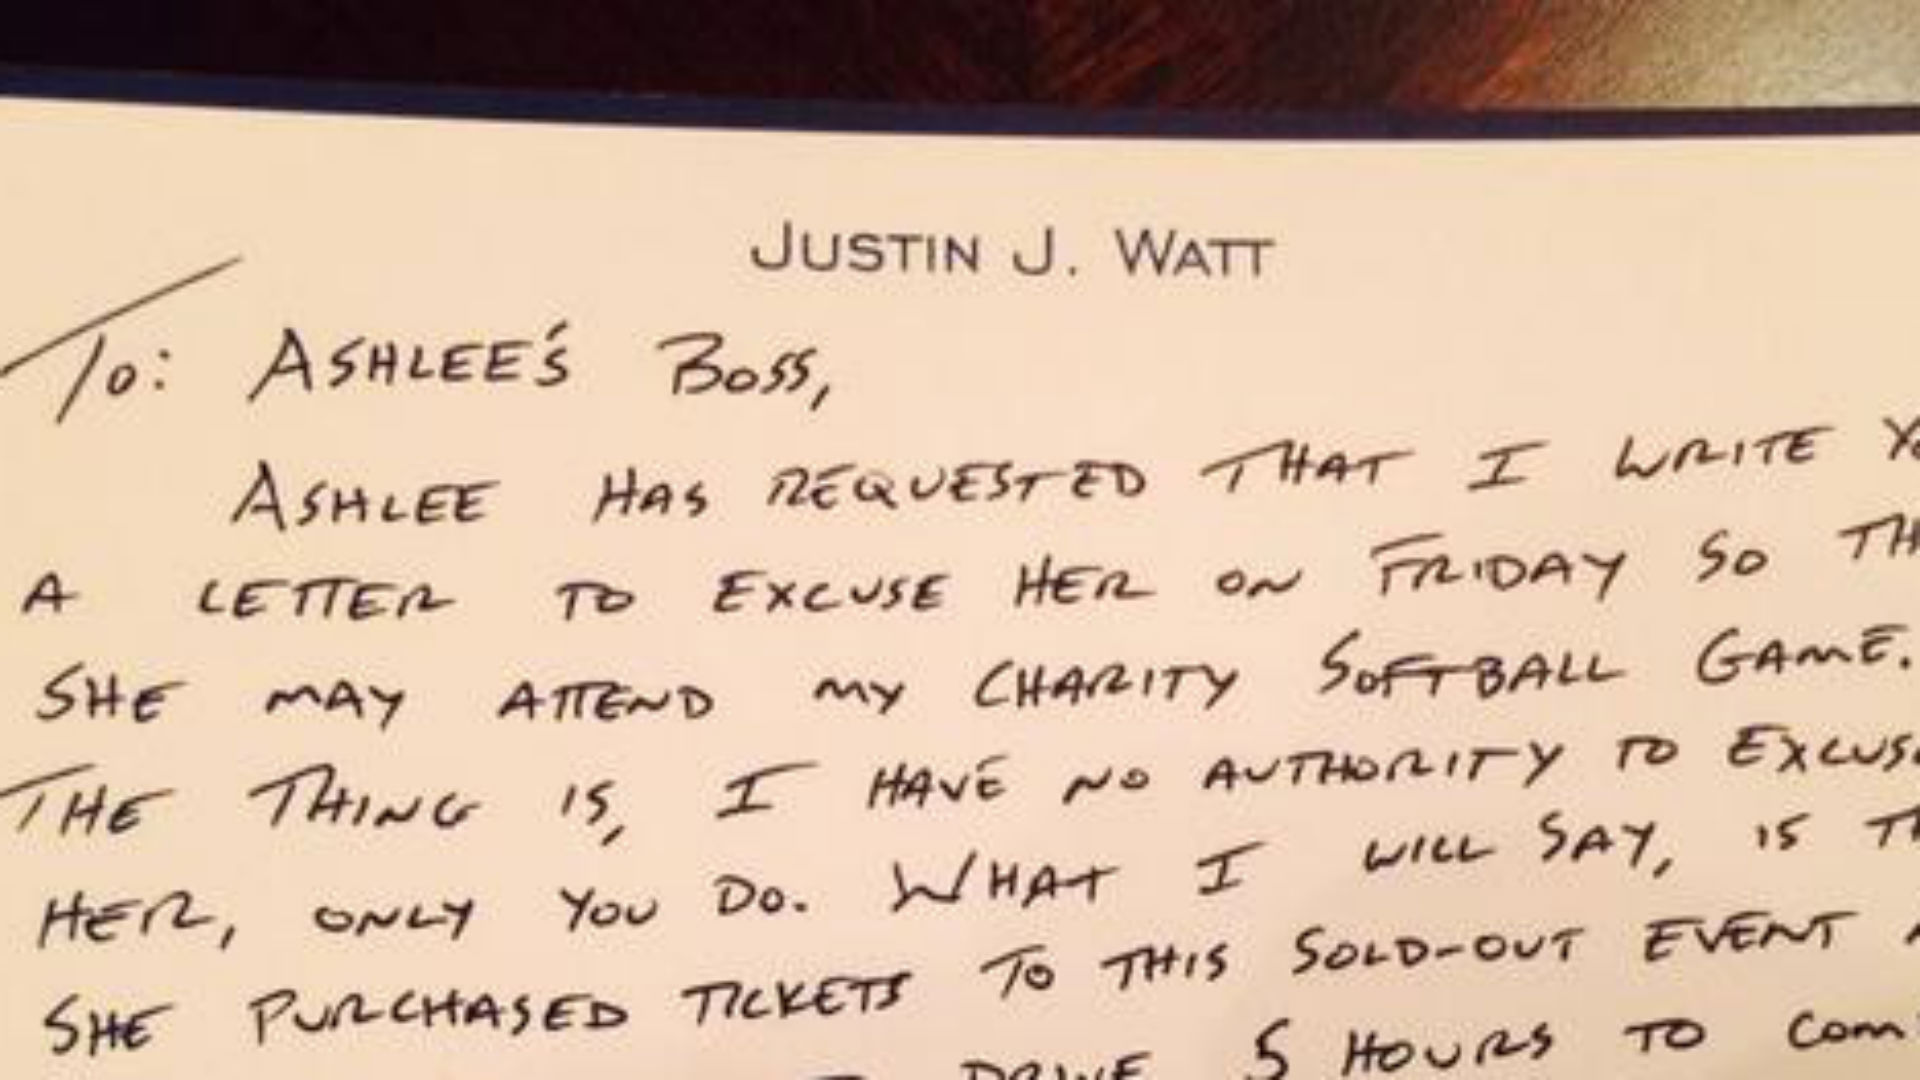 J.J. Watt writes letter to fan's boss to excuse her from work